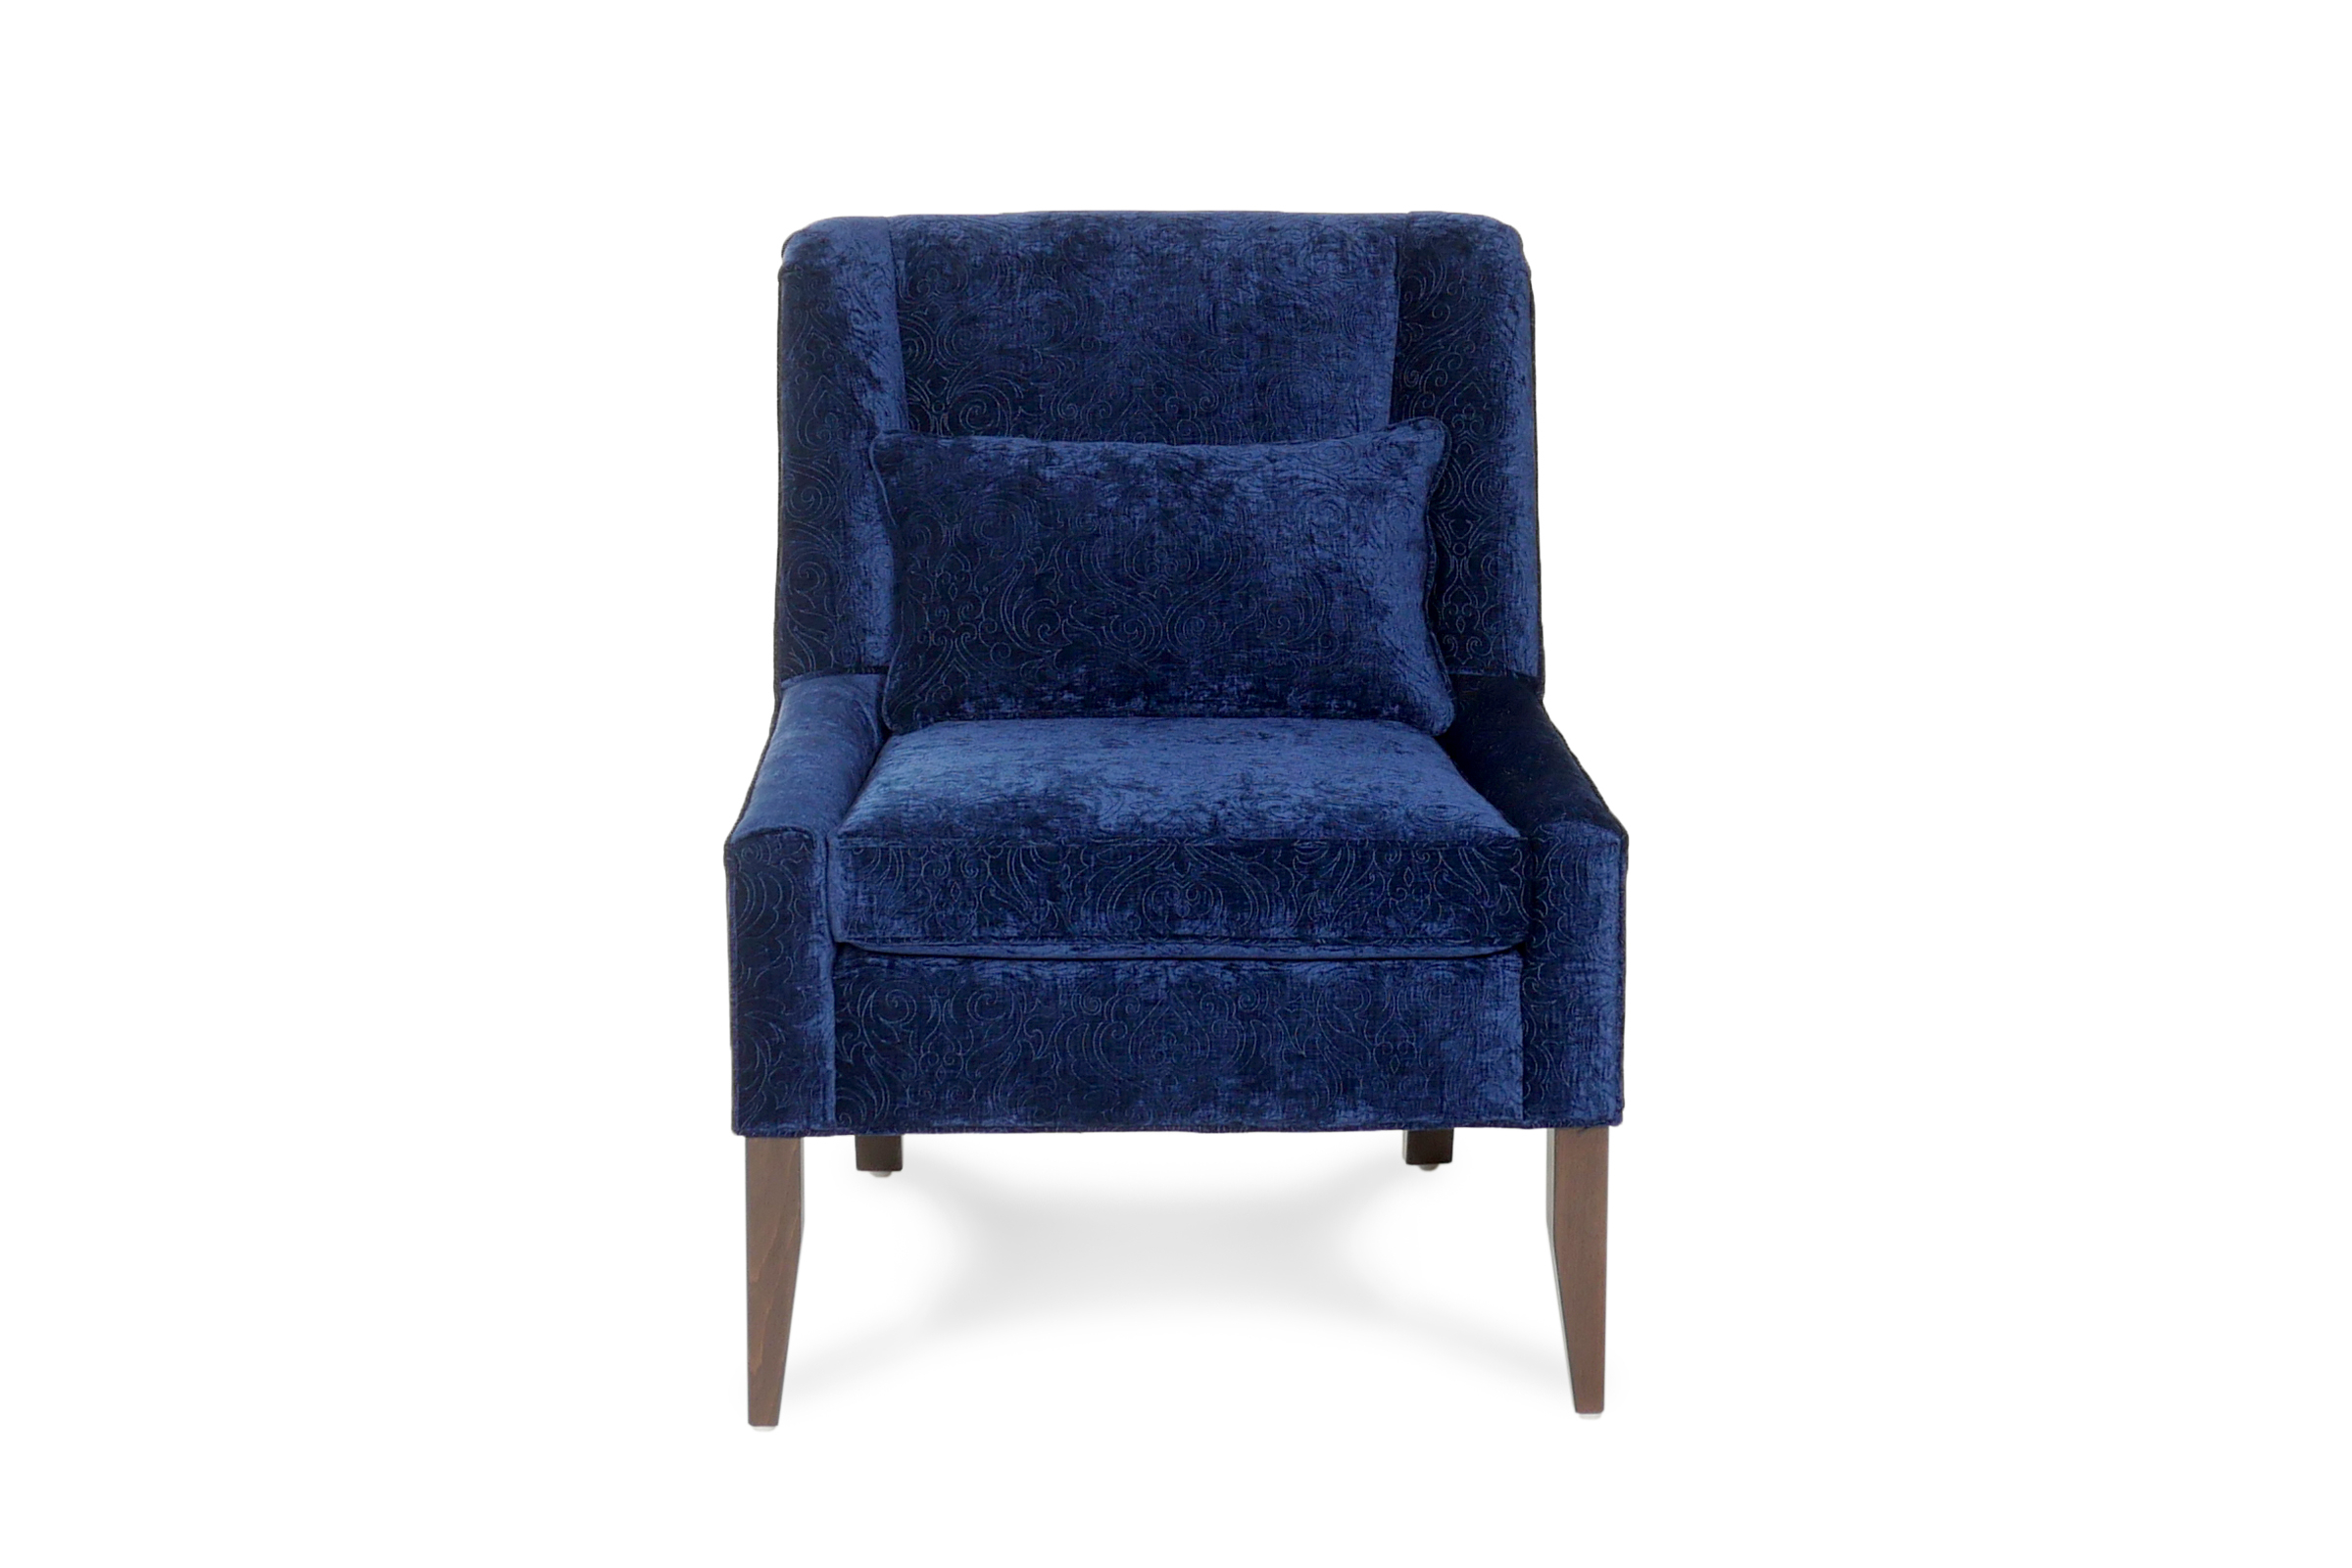 Whittaker | Birchwood Manufacturing Intended For Waterton Wingback Chairs (View 15 of 15)